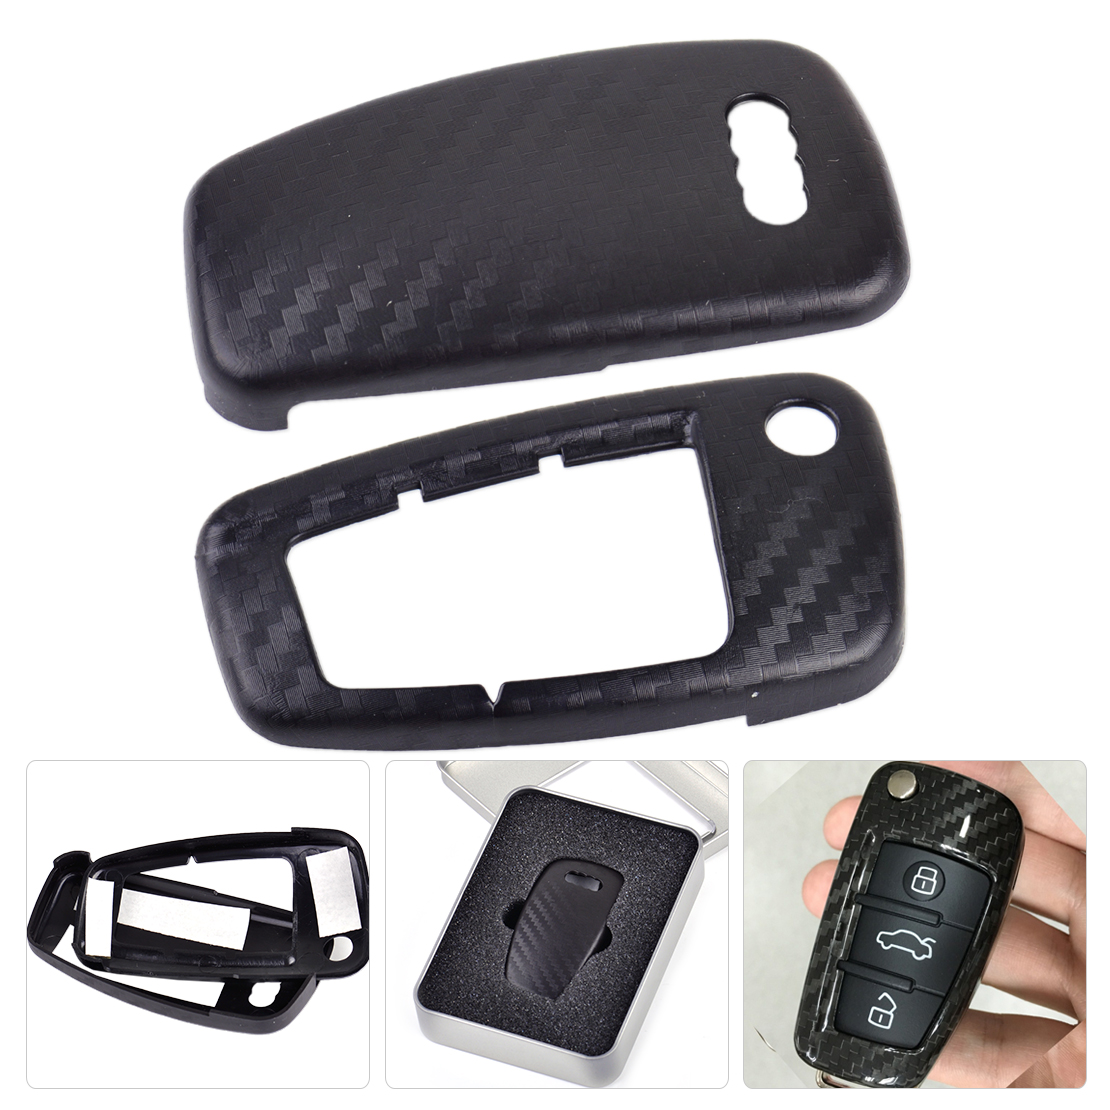 DWCX Car Carbon Fiber Texture 3 Buttons Remote Flip Key Cover Case Shell for Audi A1 A3 A4 2000 - 2011 2012 2013 2014 2015 2016 image